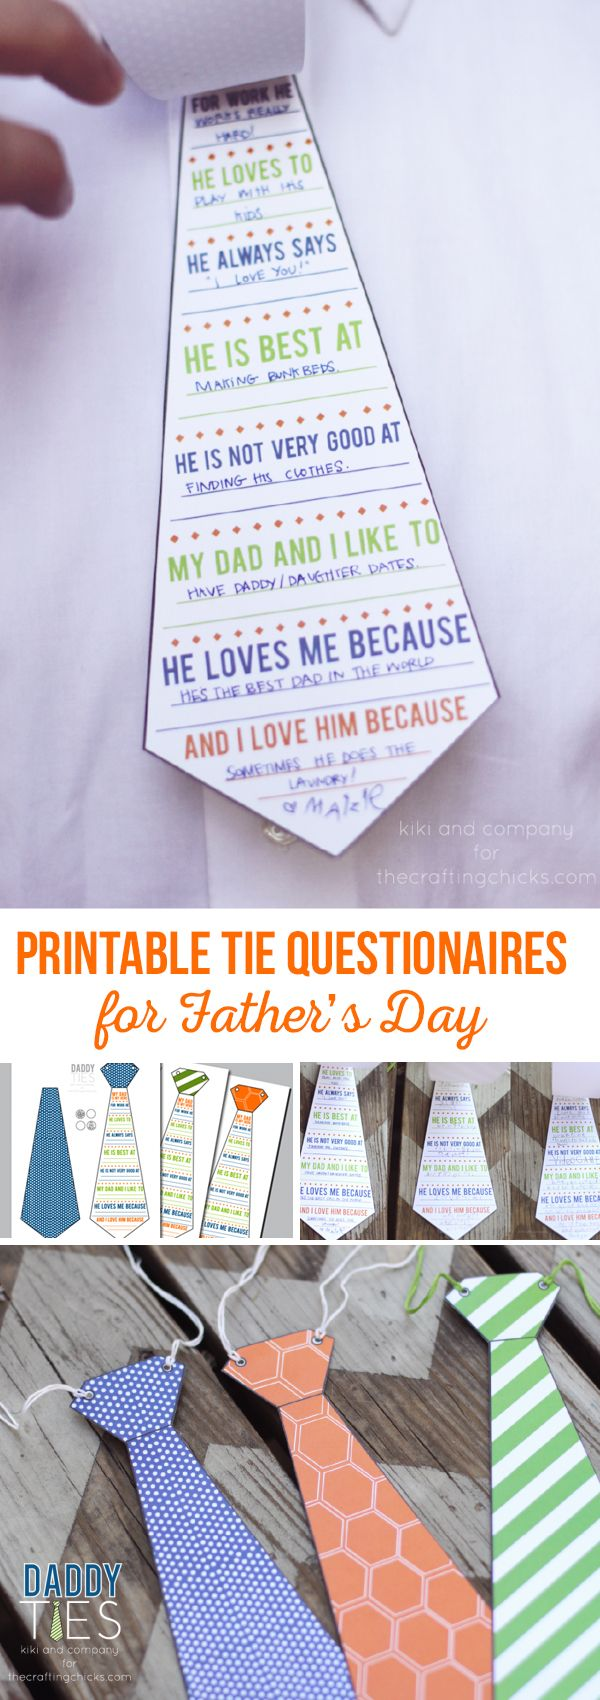 The Daddy Tie is super easy to put together. Simply download the tie. Print and cut out. Have your child fill out the questionnaire or if they are too little, you can help them. via @craftingchicks